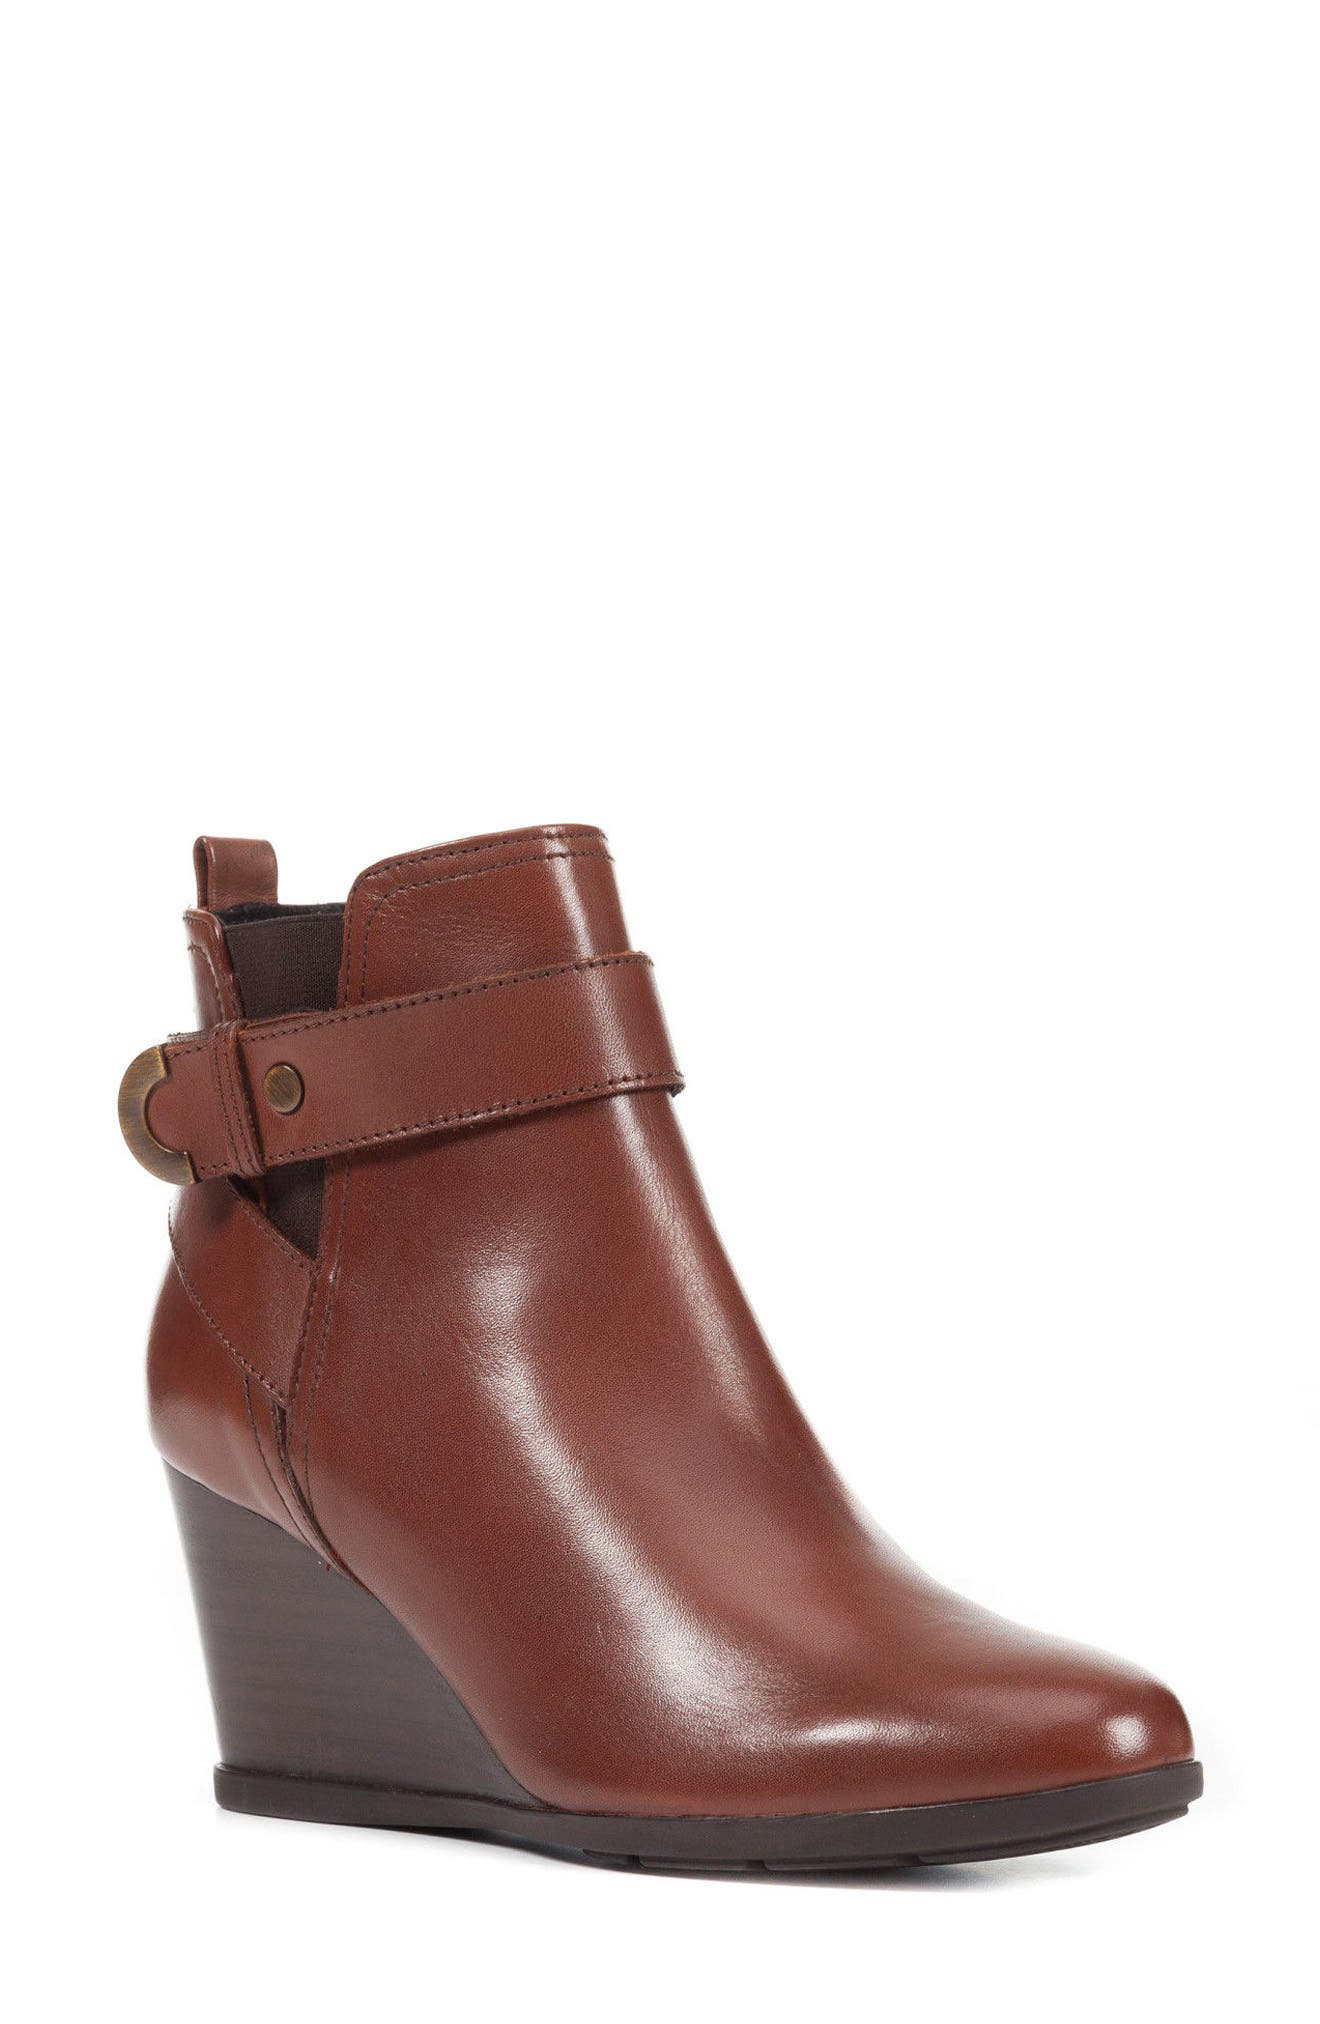 Geox Inspiration Buckle Wedge Bootie (Women)